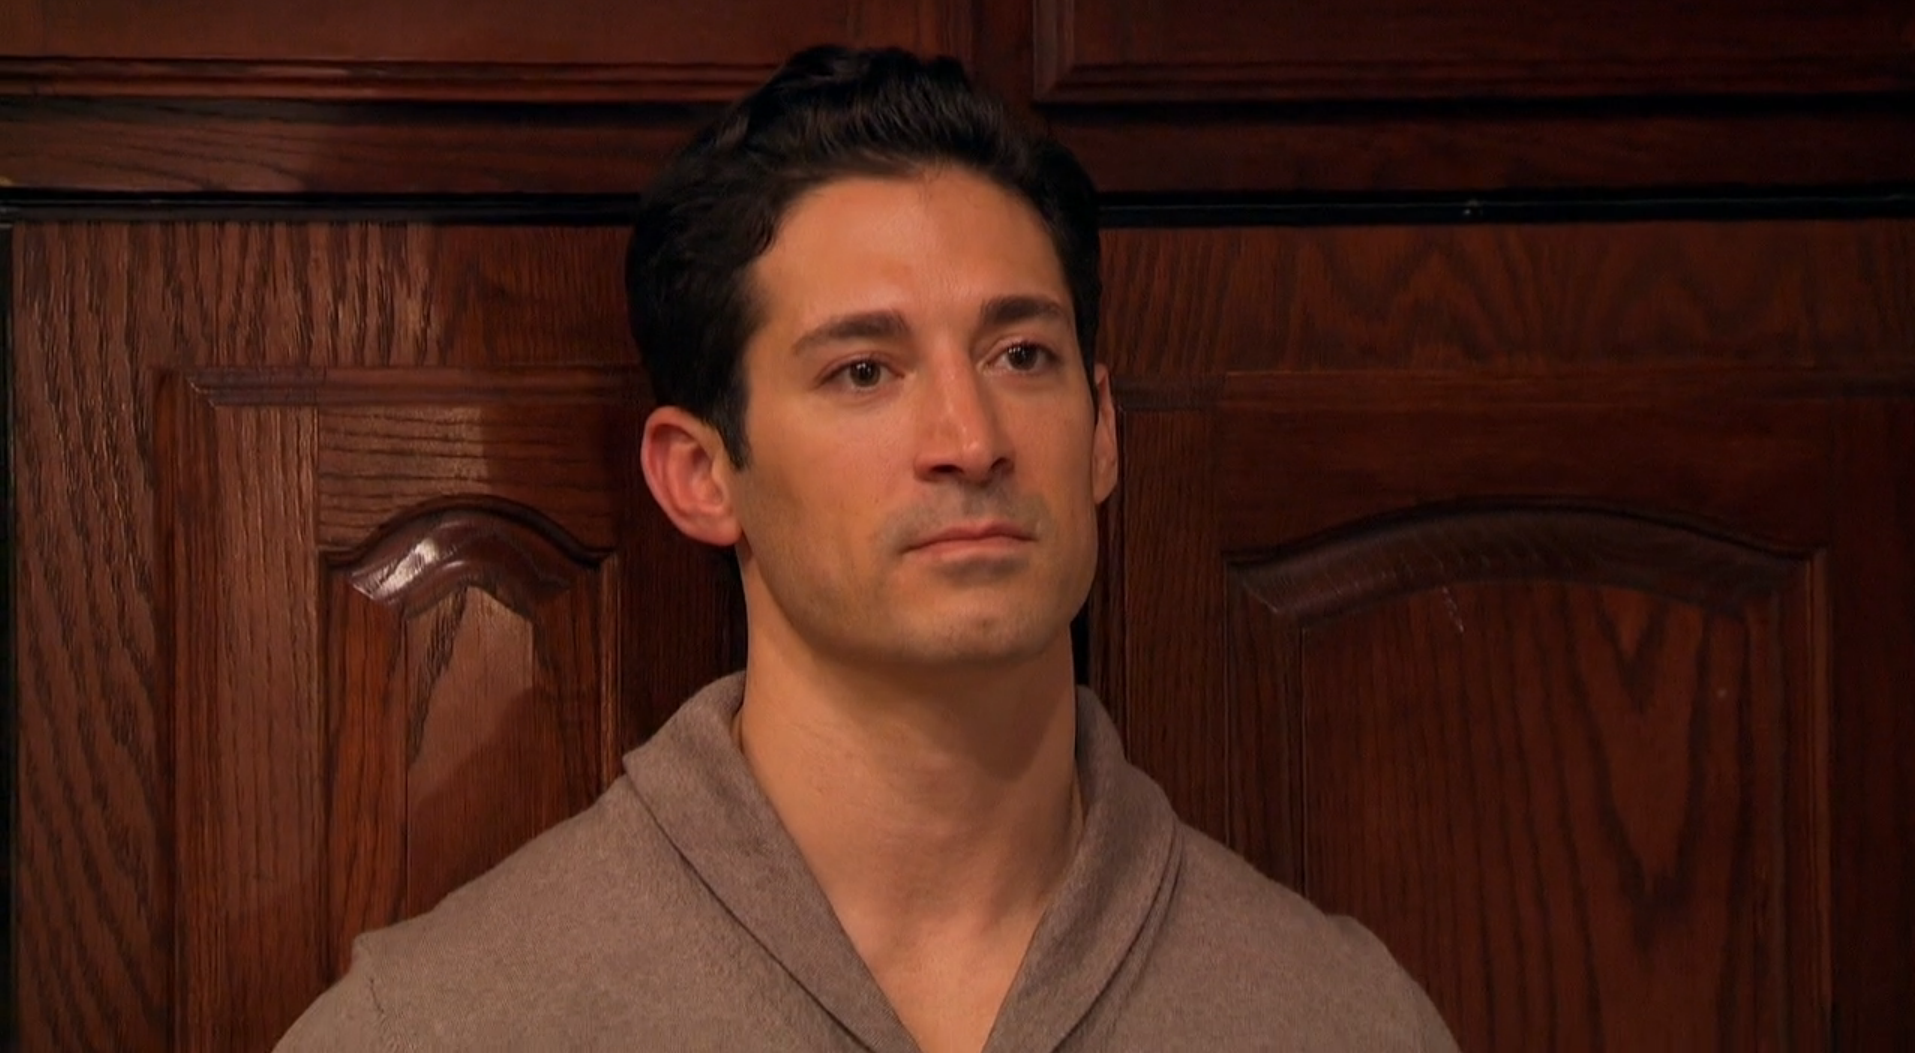 JoJo's Brother Ben Patton Thought His 'Bachelor' Edit Was